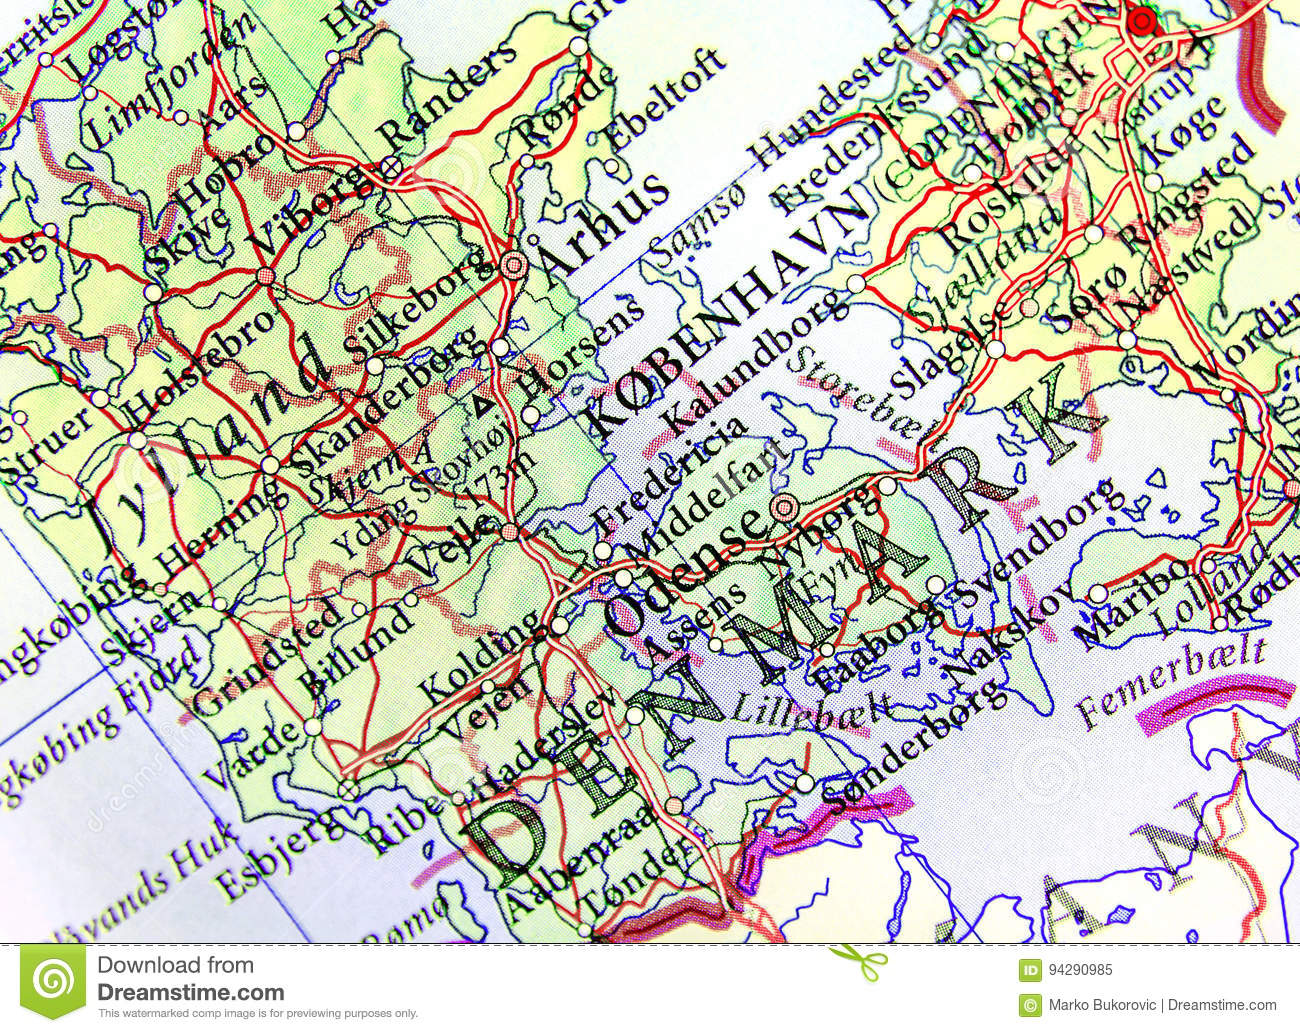 Geographic map of European country Denmark with important cities